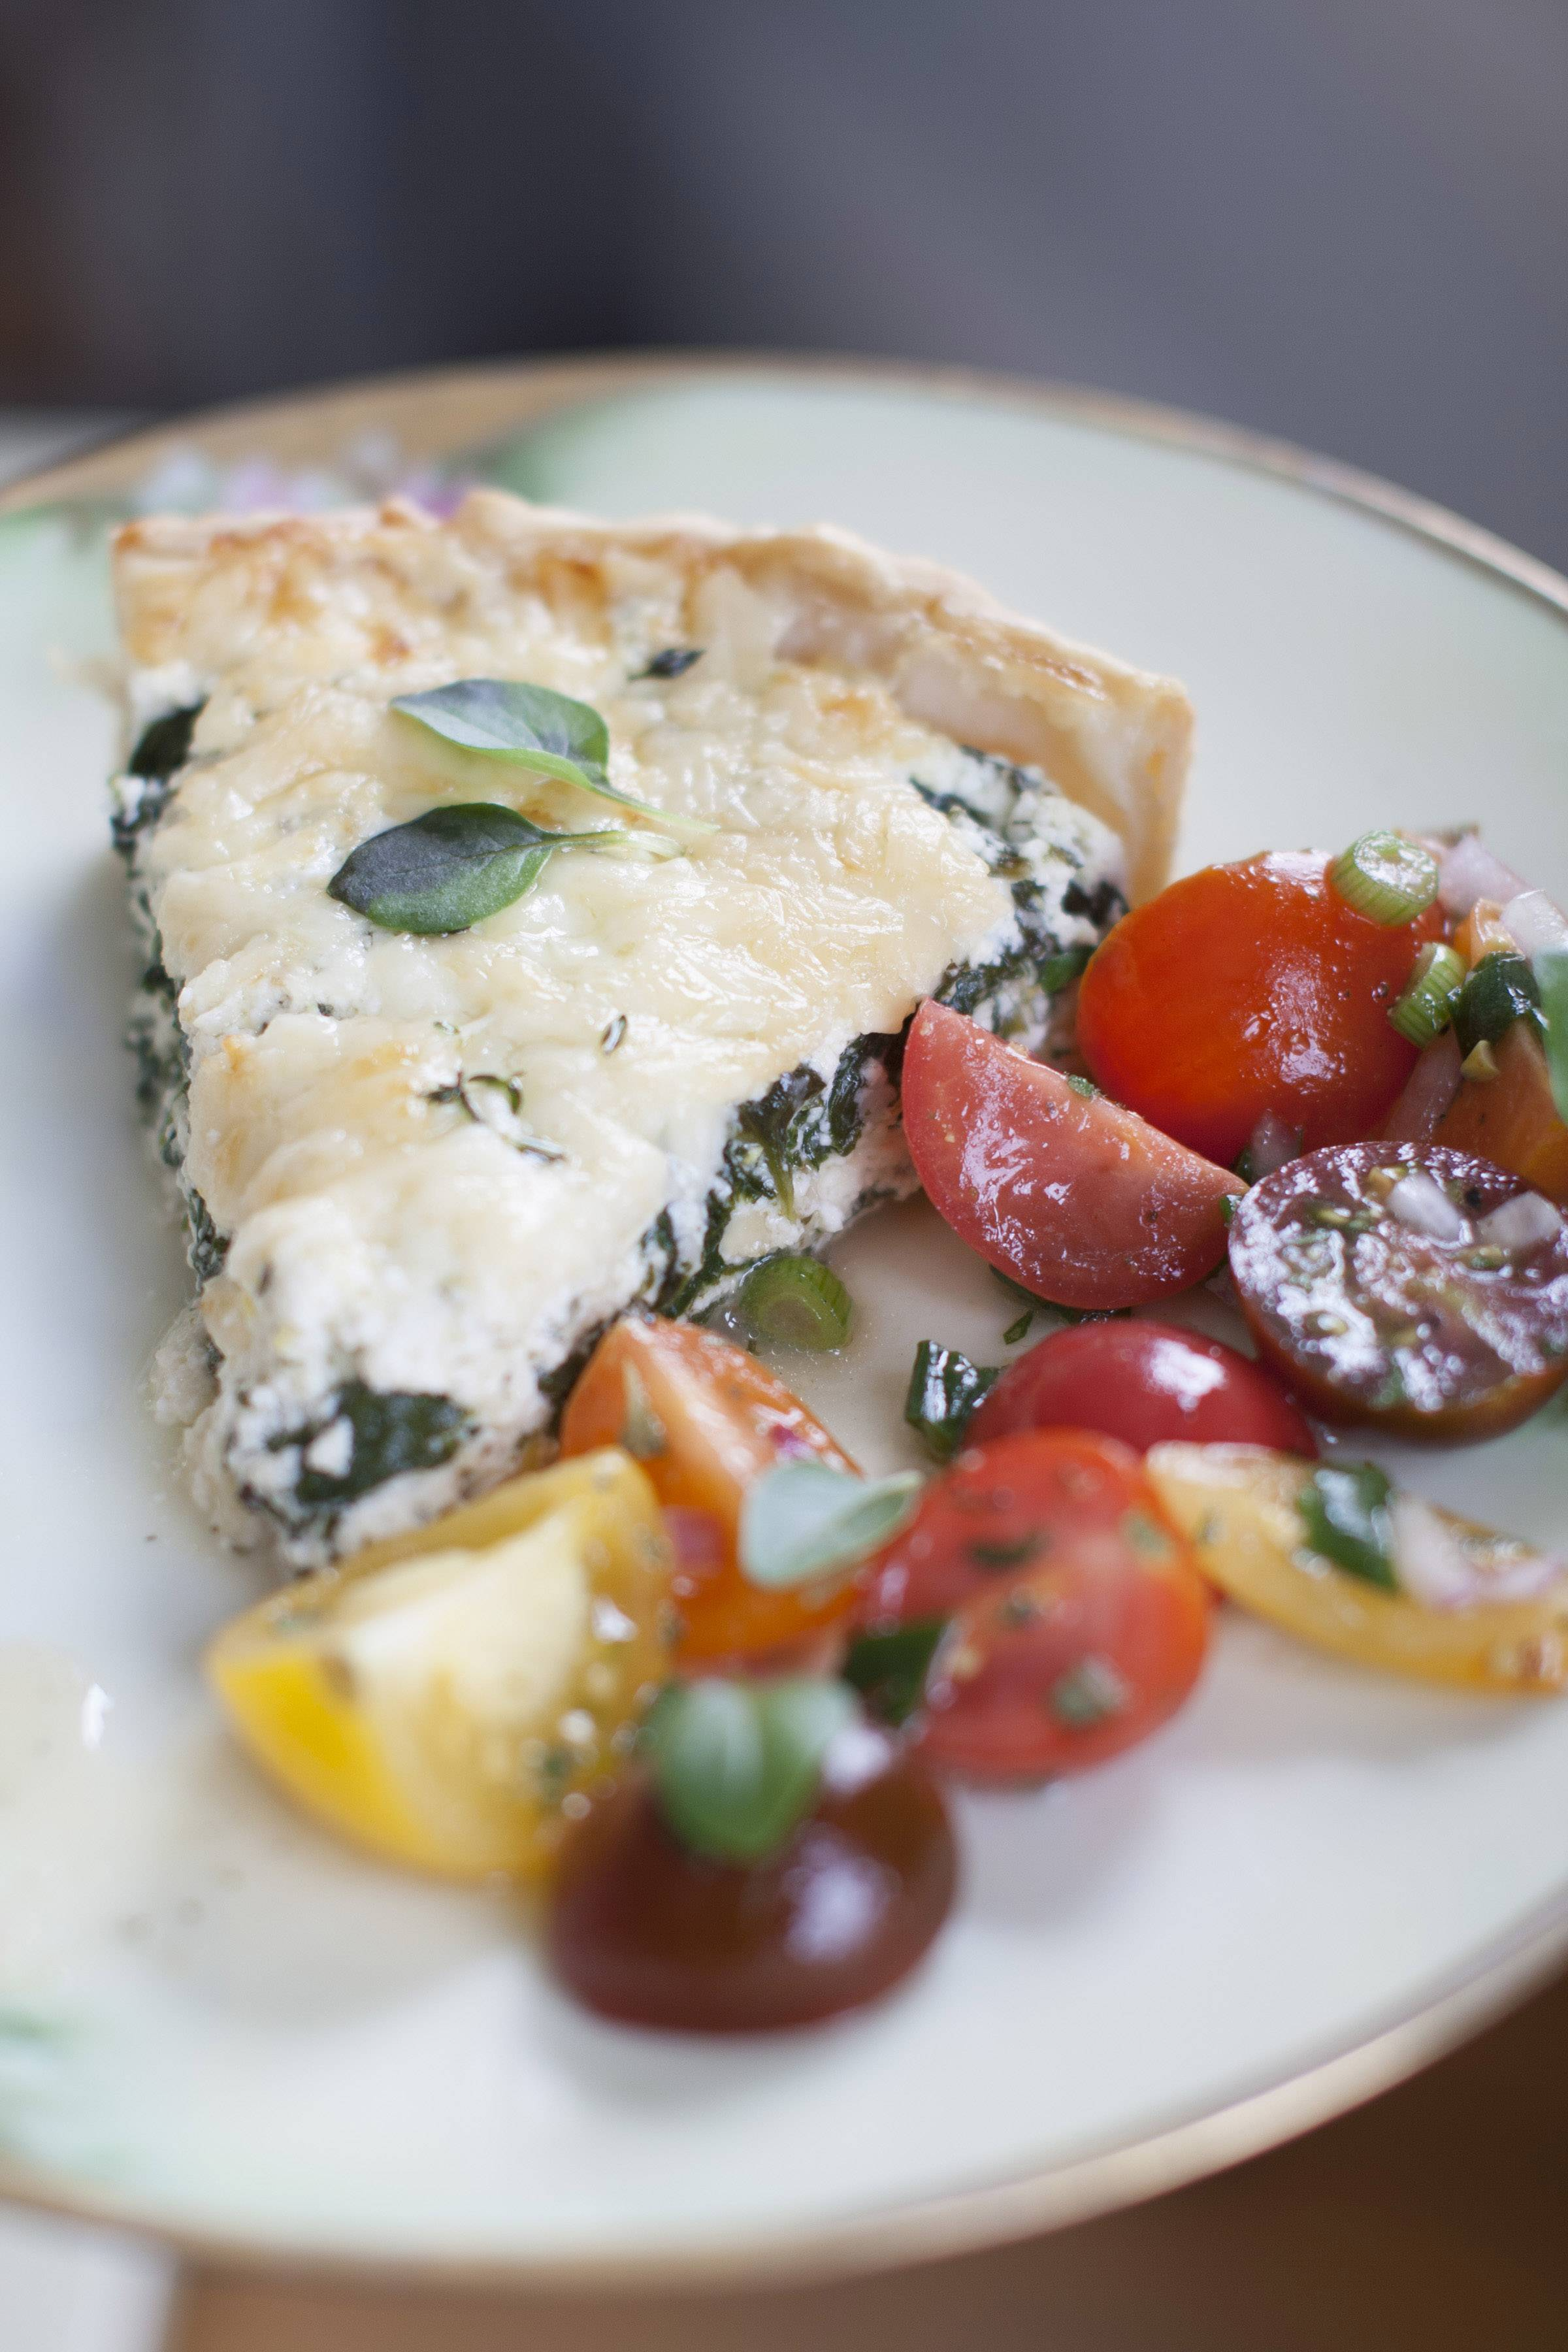 This Ricotta Spinach Tart pairs lasagna ingredients with eggs in a quiche-like form.